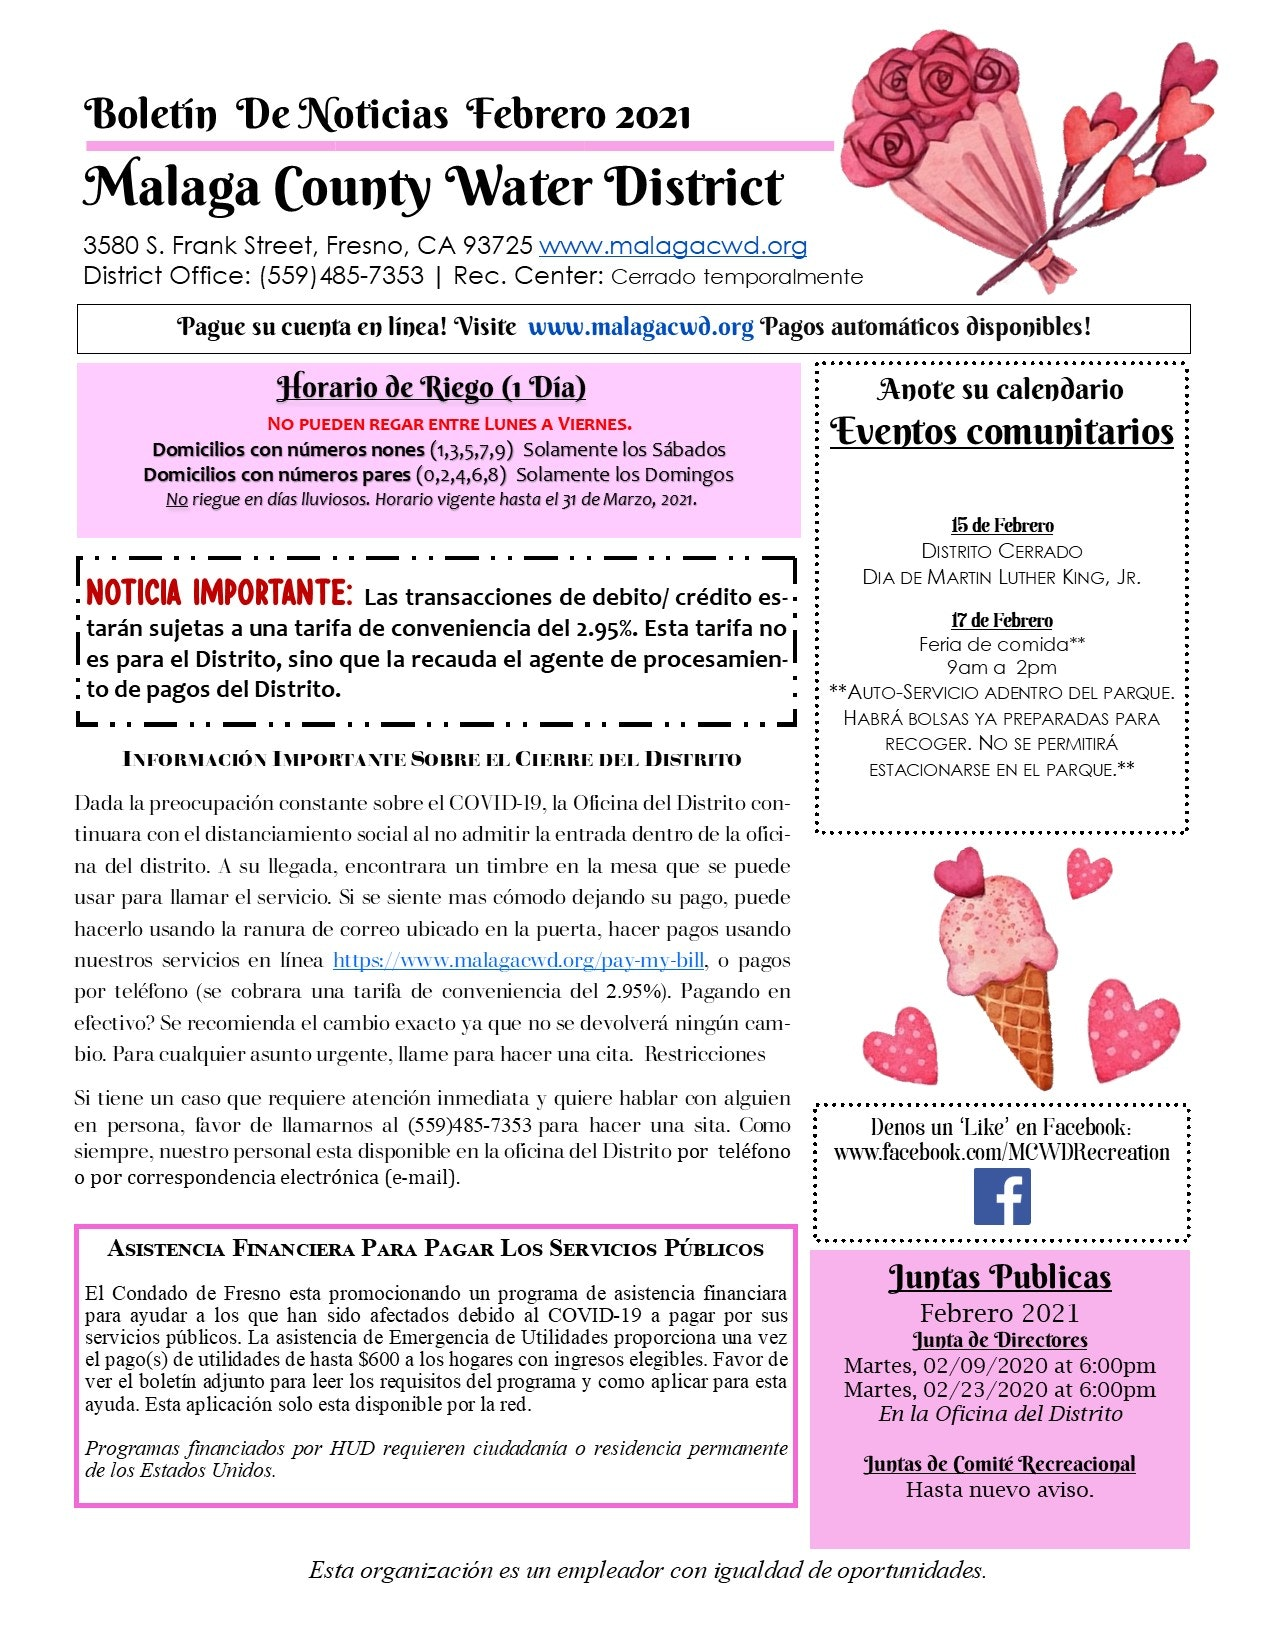 May contain: flyer, brochure, advertisement, poster, and paper